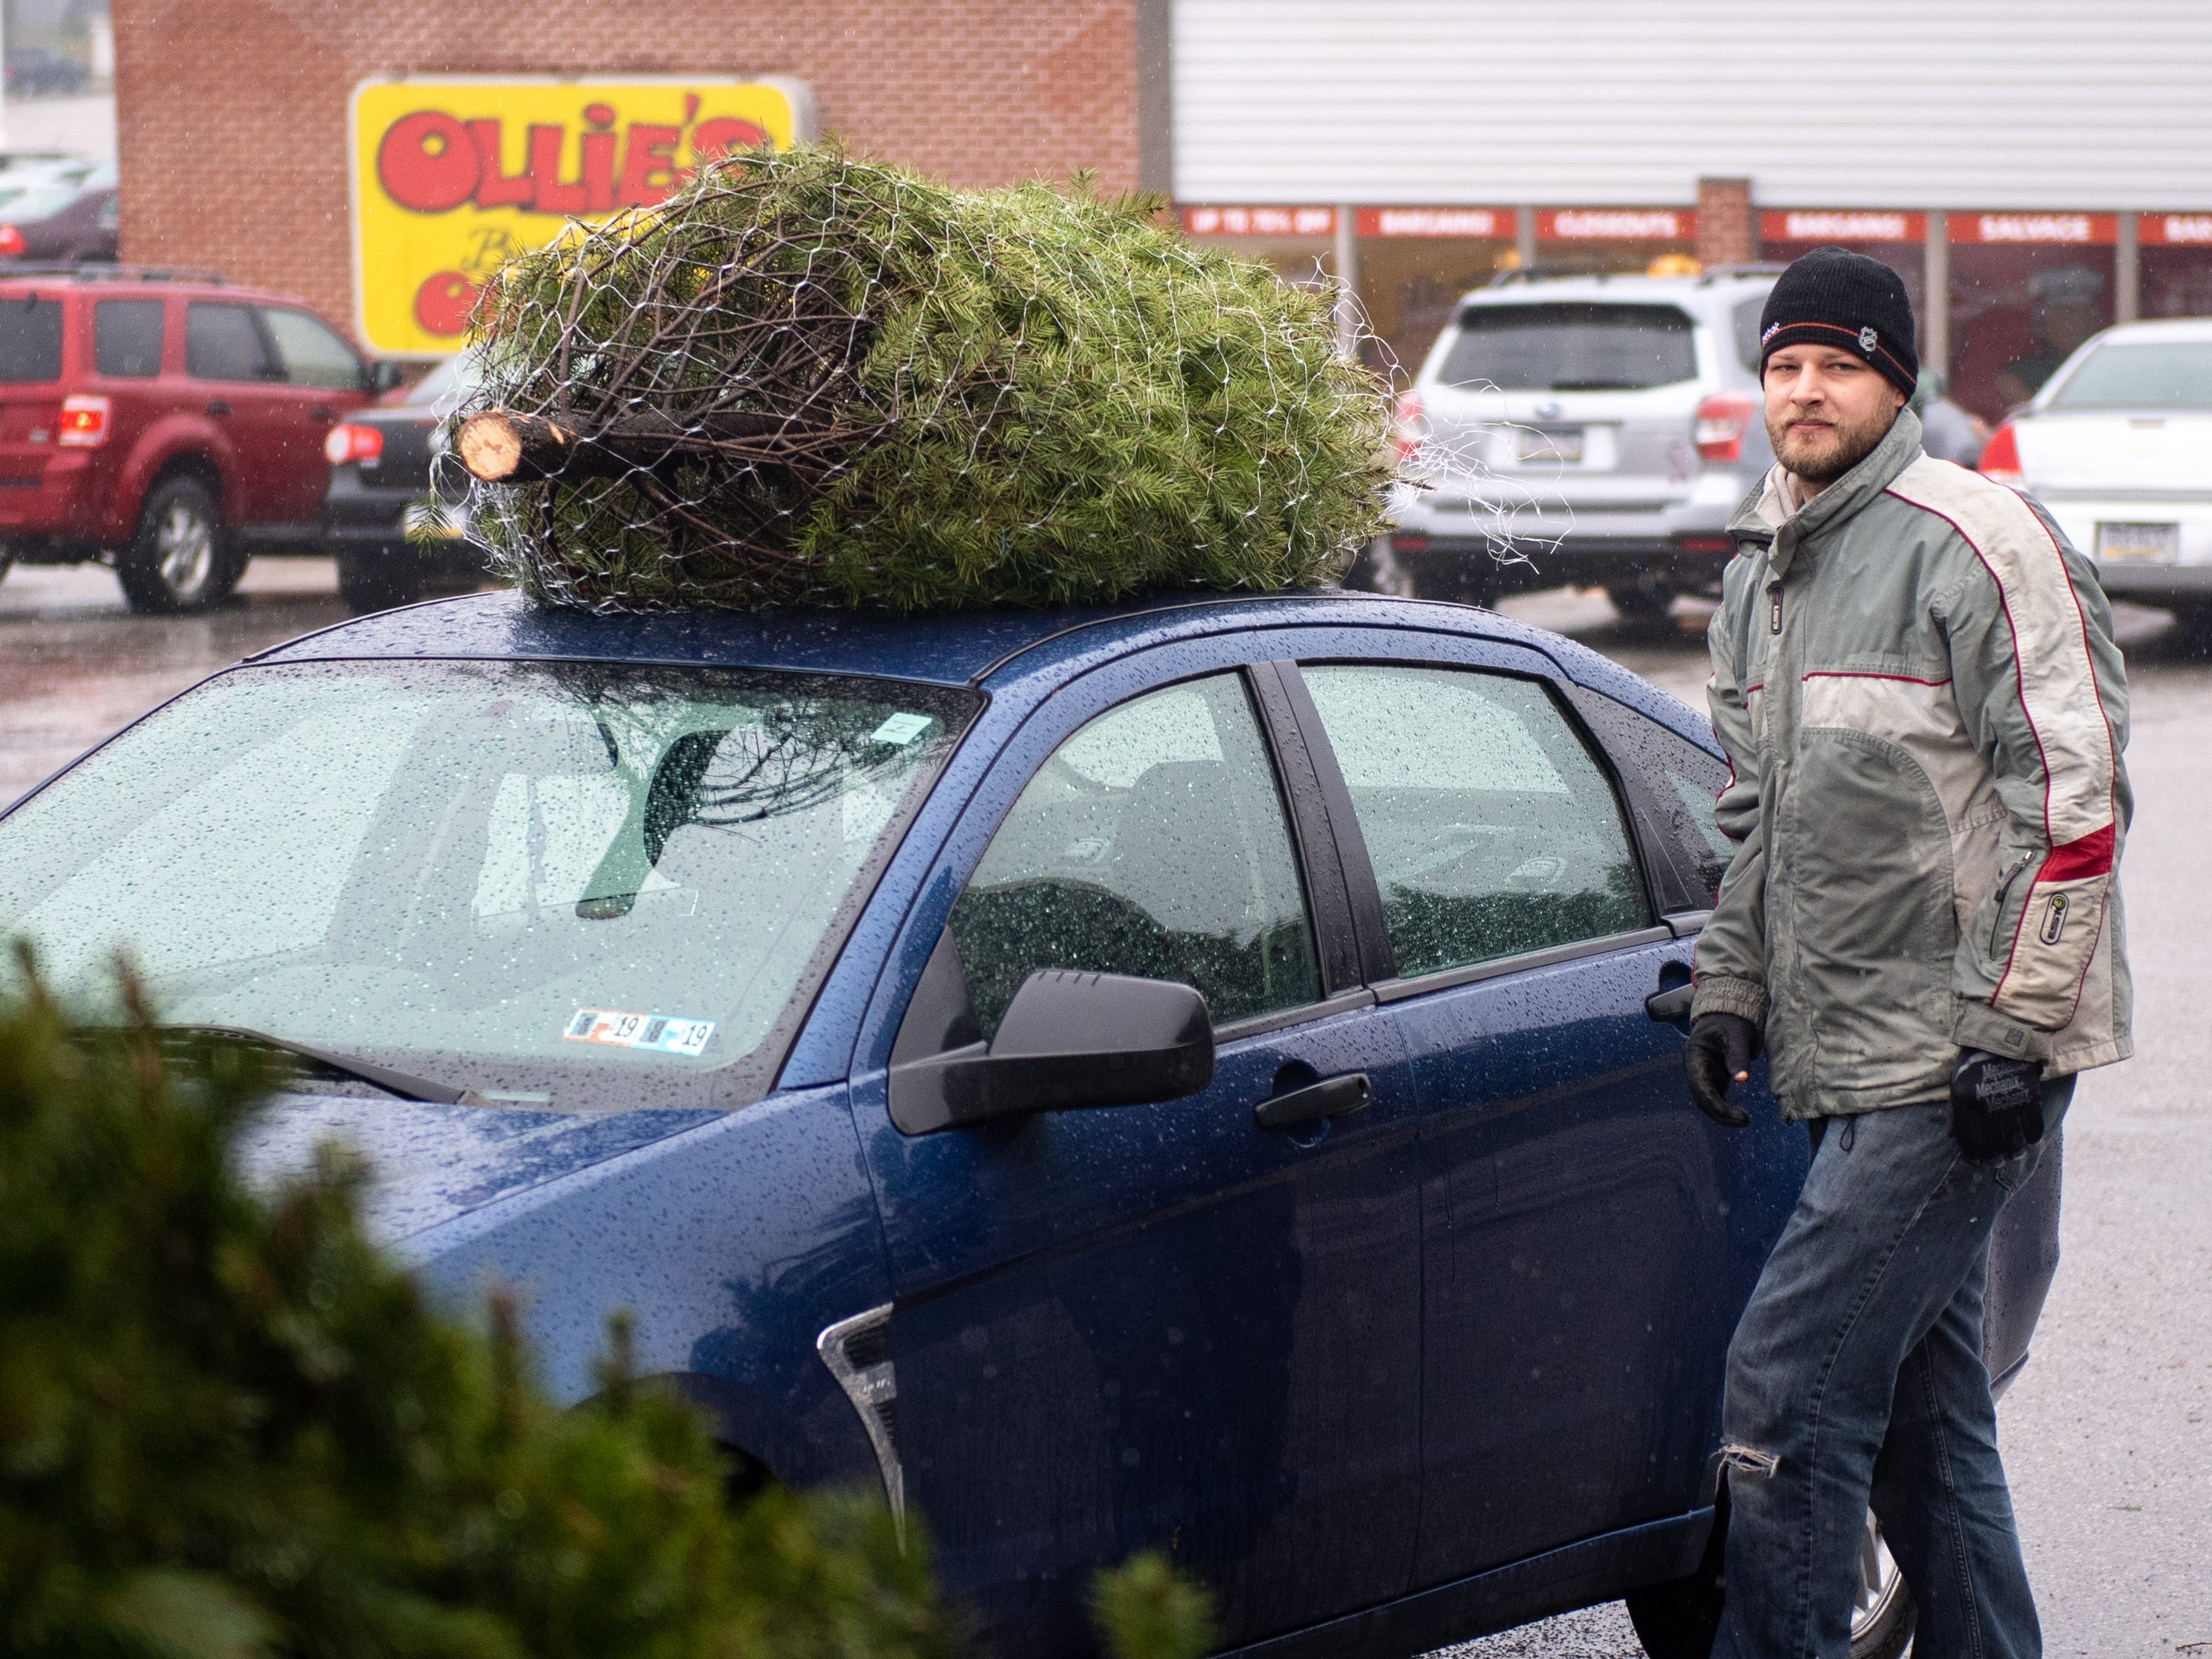 Customers bring various vehicles to the lot get trees at the annual Christmas Tree Sale in the parking lot of Ollie's Bargain Outlet, Saturday, December 15, 2018.